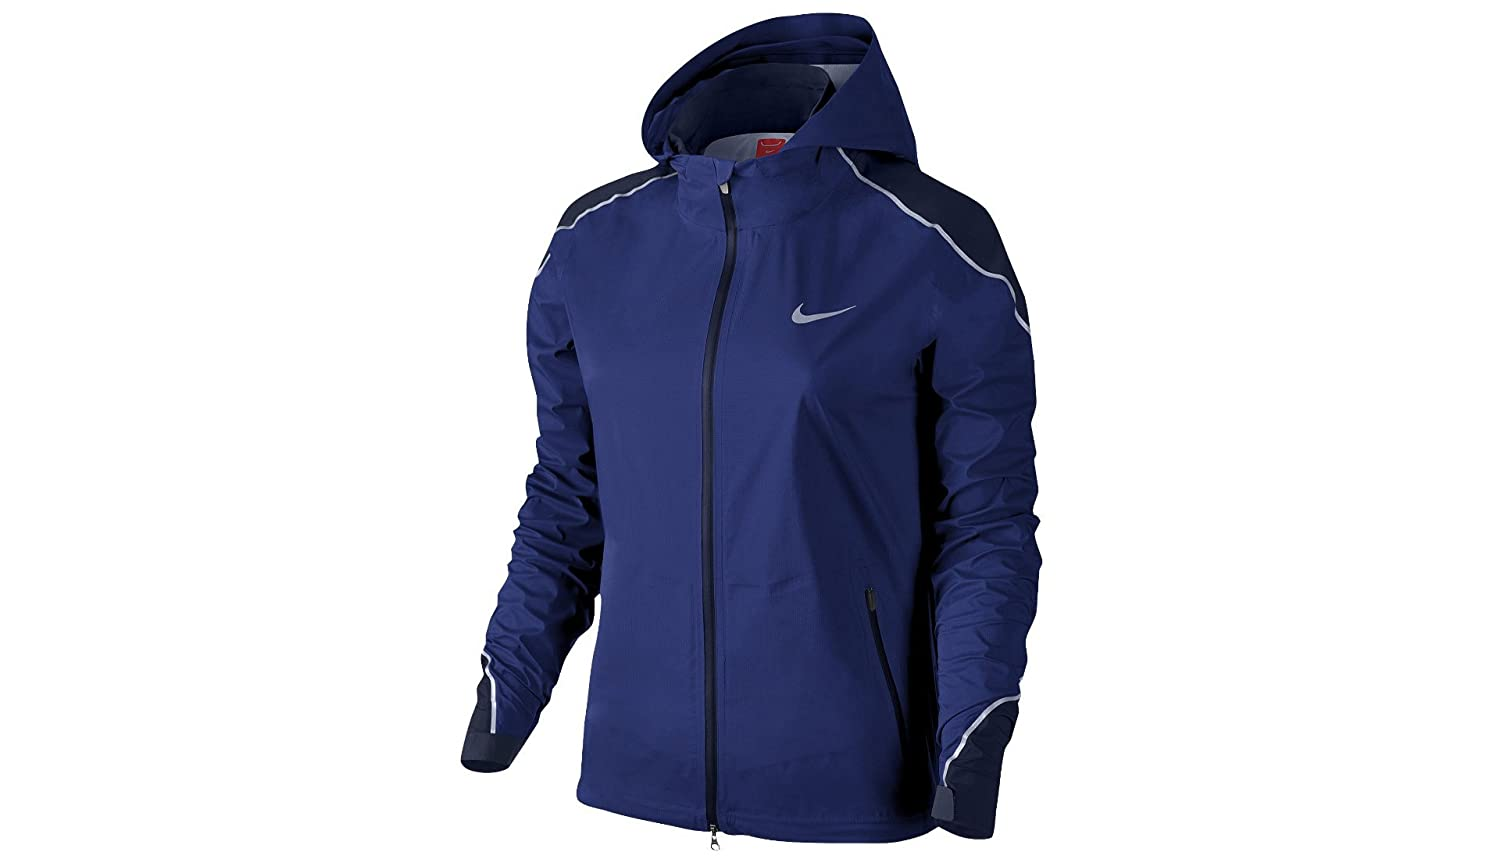 e3e09944a44b Amazon.com   Nike Hyper Shield Light Women s Running Jacket   Sports    Outdoors